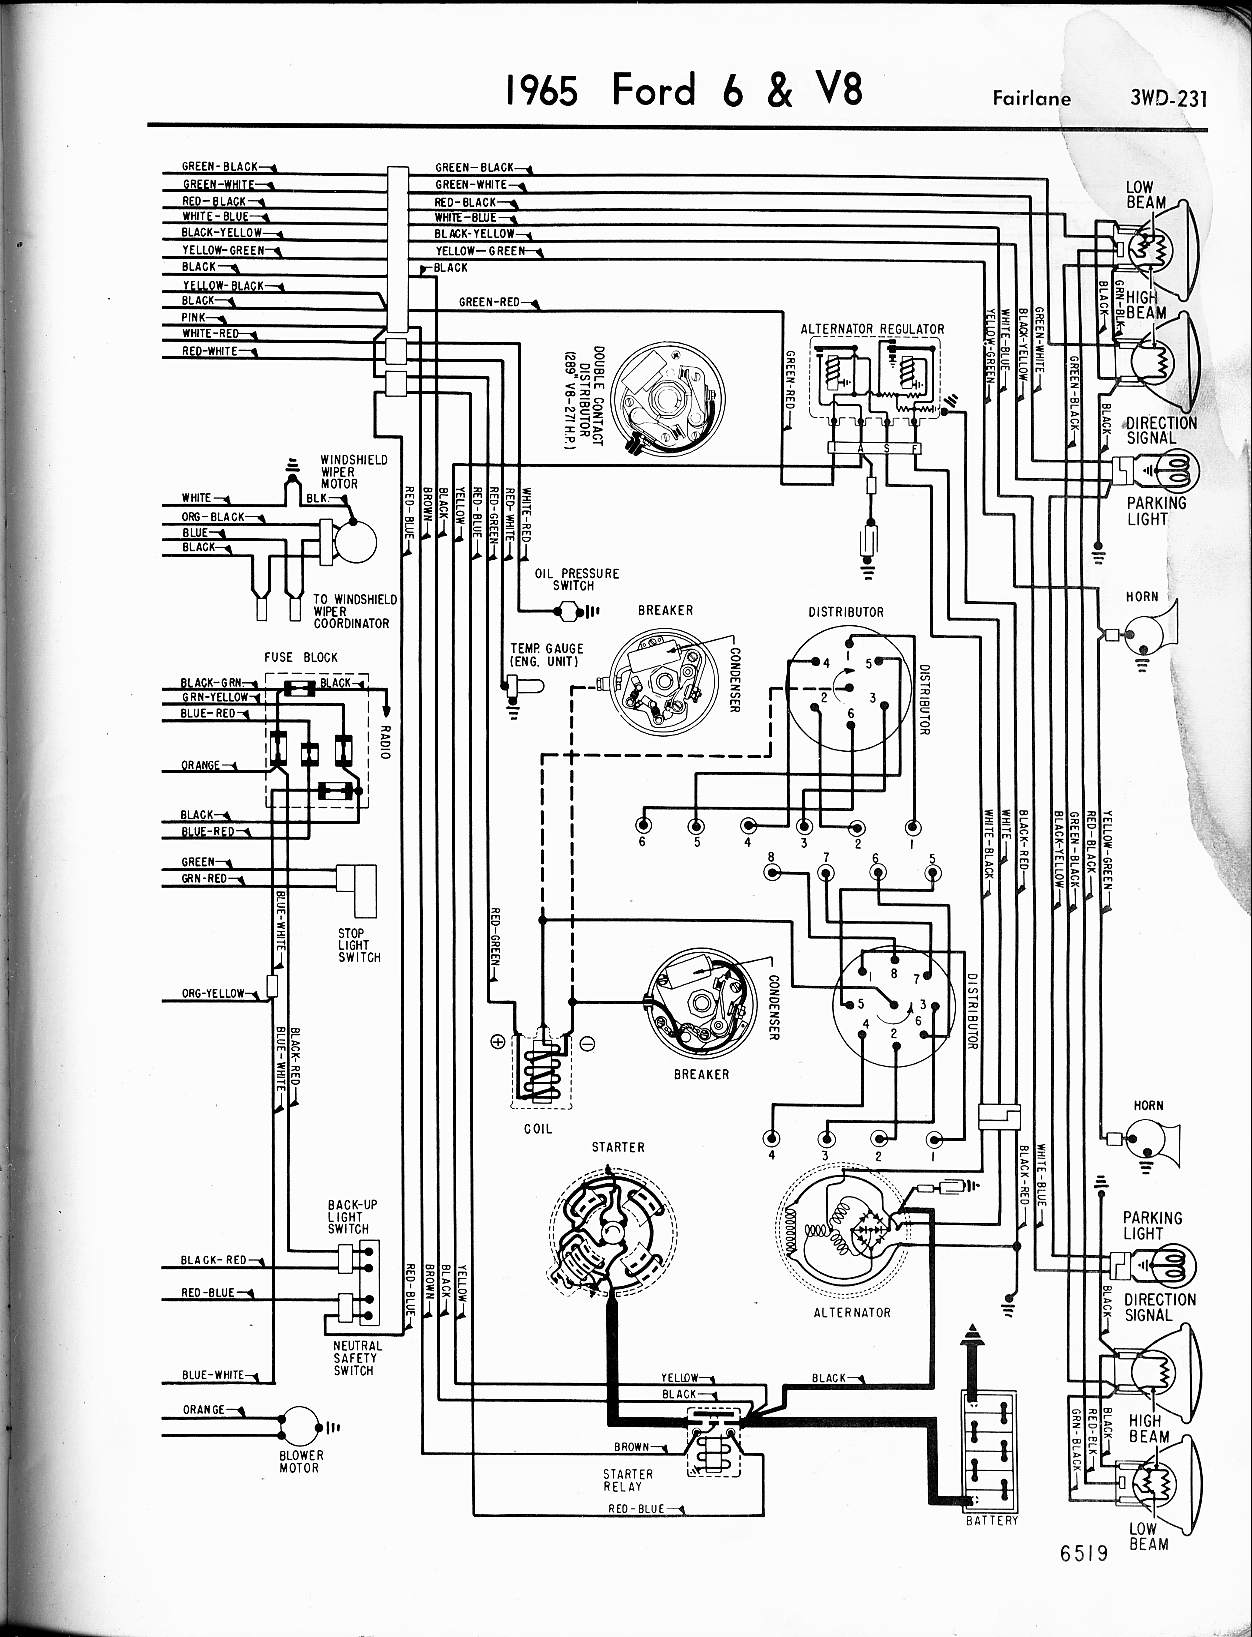 57 65 Ford Wiring Diagrams Light Schematics 1965 6 V8 Fairlane Right